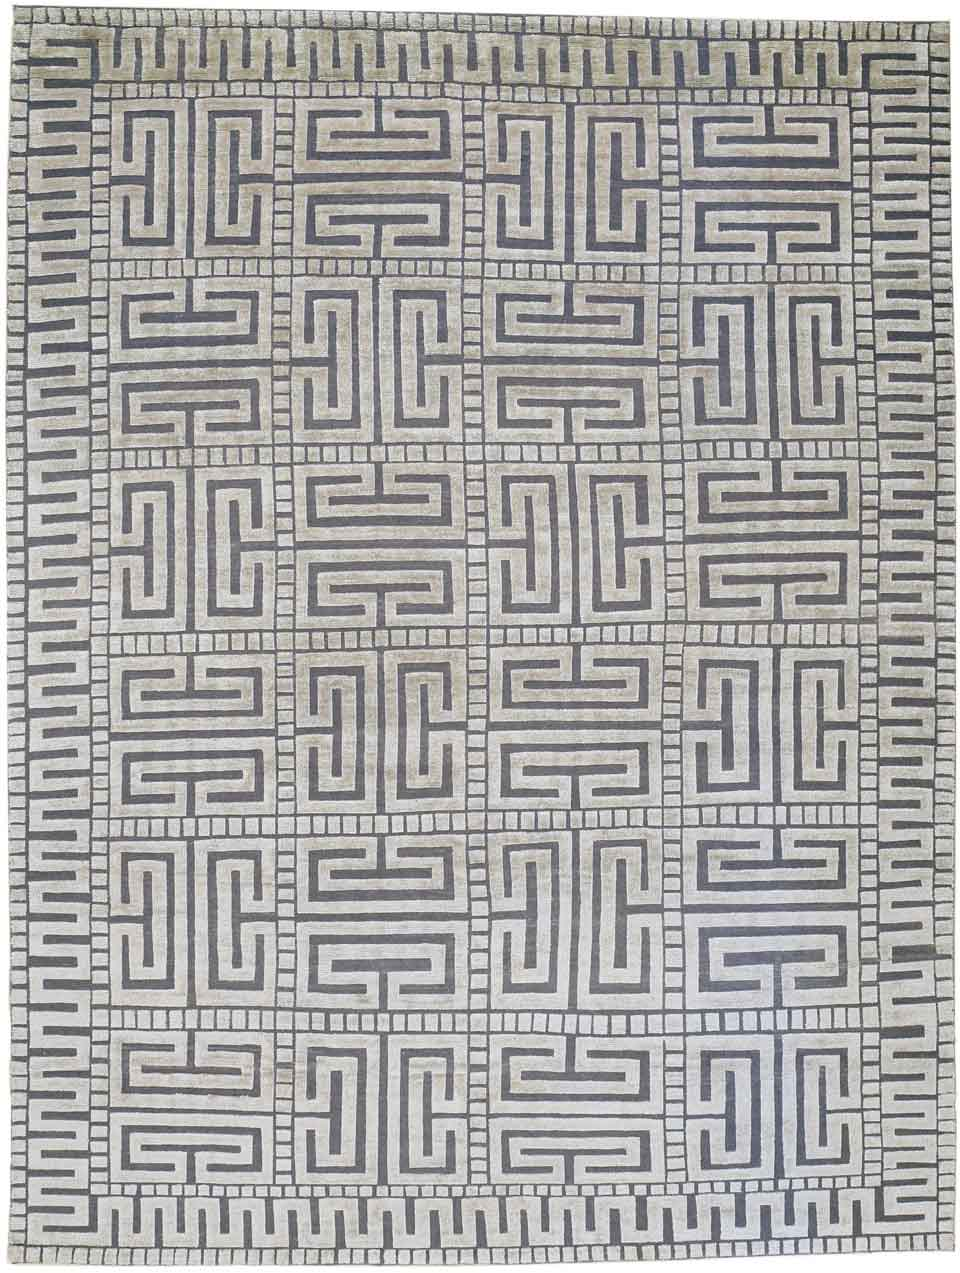 Ursula, India, Contemporary, 365 x 275 cm. Bamboo silk pile on a flatwoven wool background. Alberto Levi Gallery, Milano. | Image courtesy of Alberto Levi